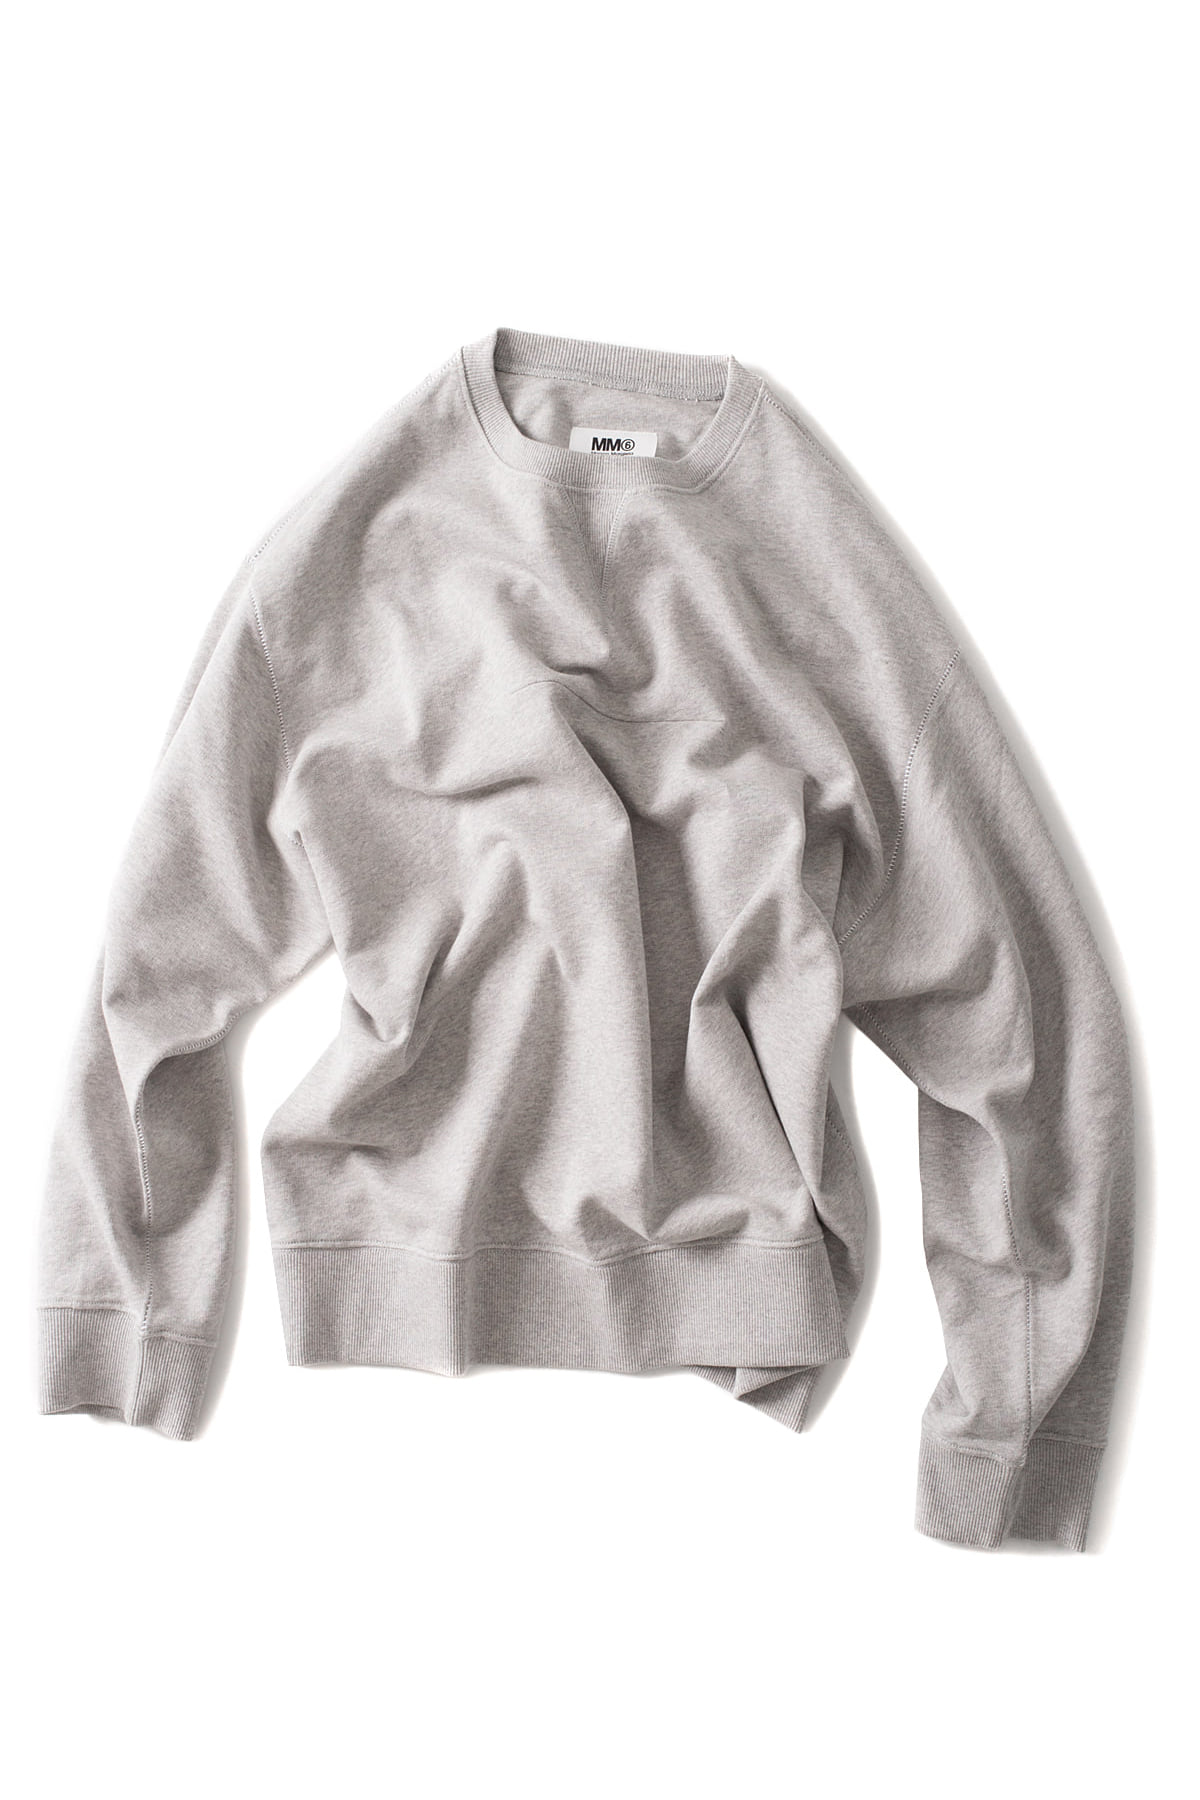 MM6 Maison Margiela : Basic Sweatshirt (Grey)